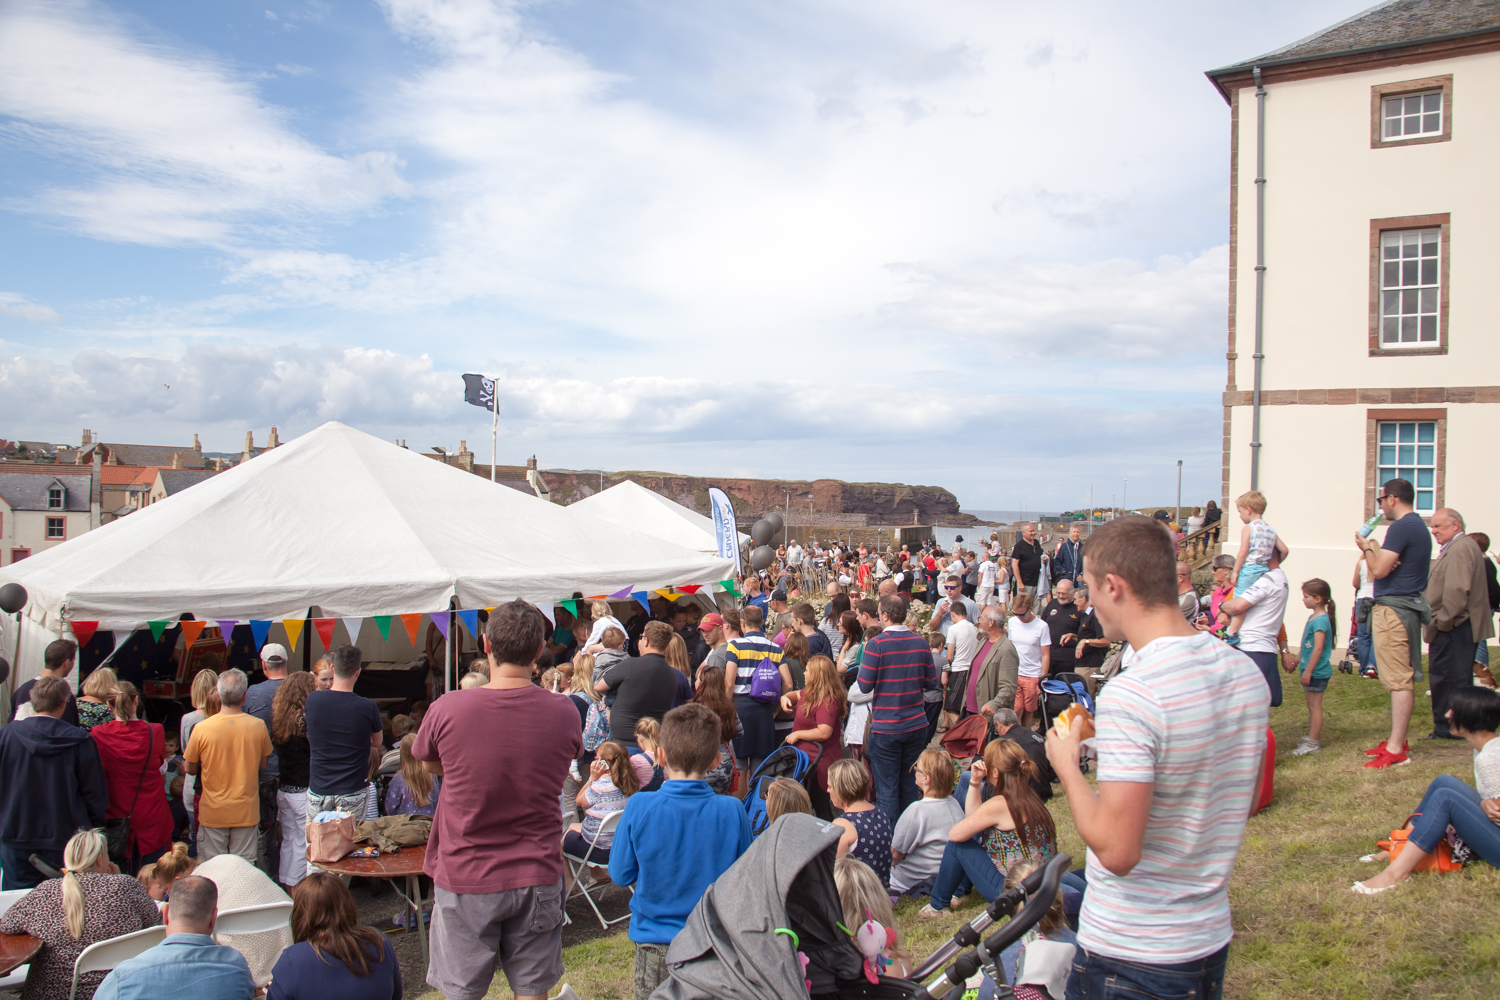 PICTORIAL_BERWICK_eyemouth-gunsgreen-extravaganza-photography-entertainment-party-event-photographer-harbour-gary-dunn-dancers-stilts-performances-speeches-day-out-summer-4626.jpg